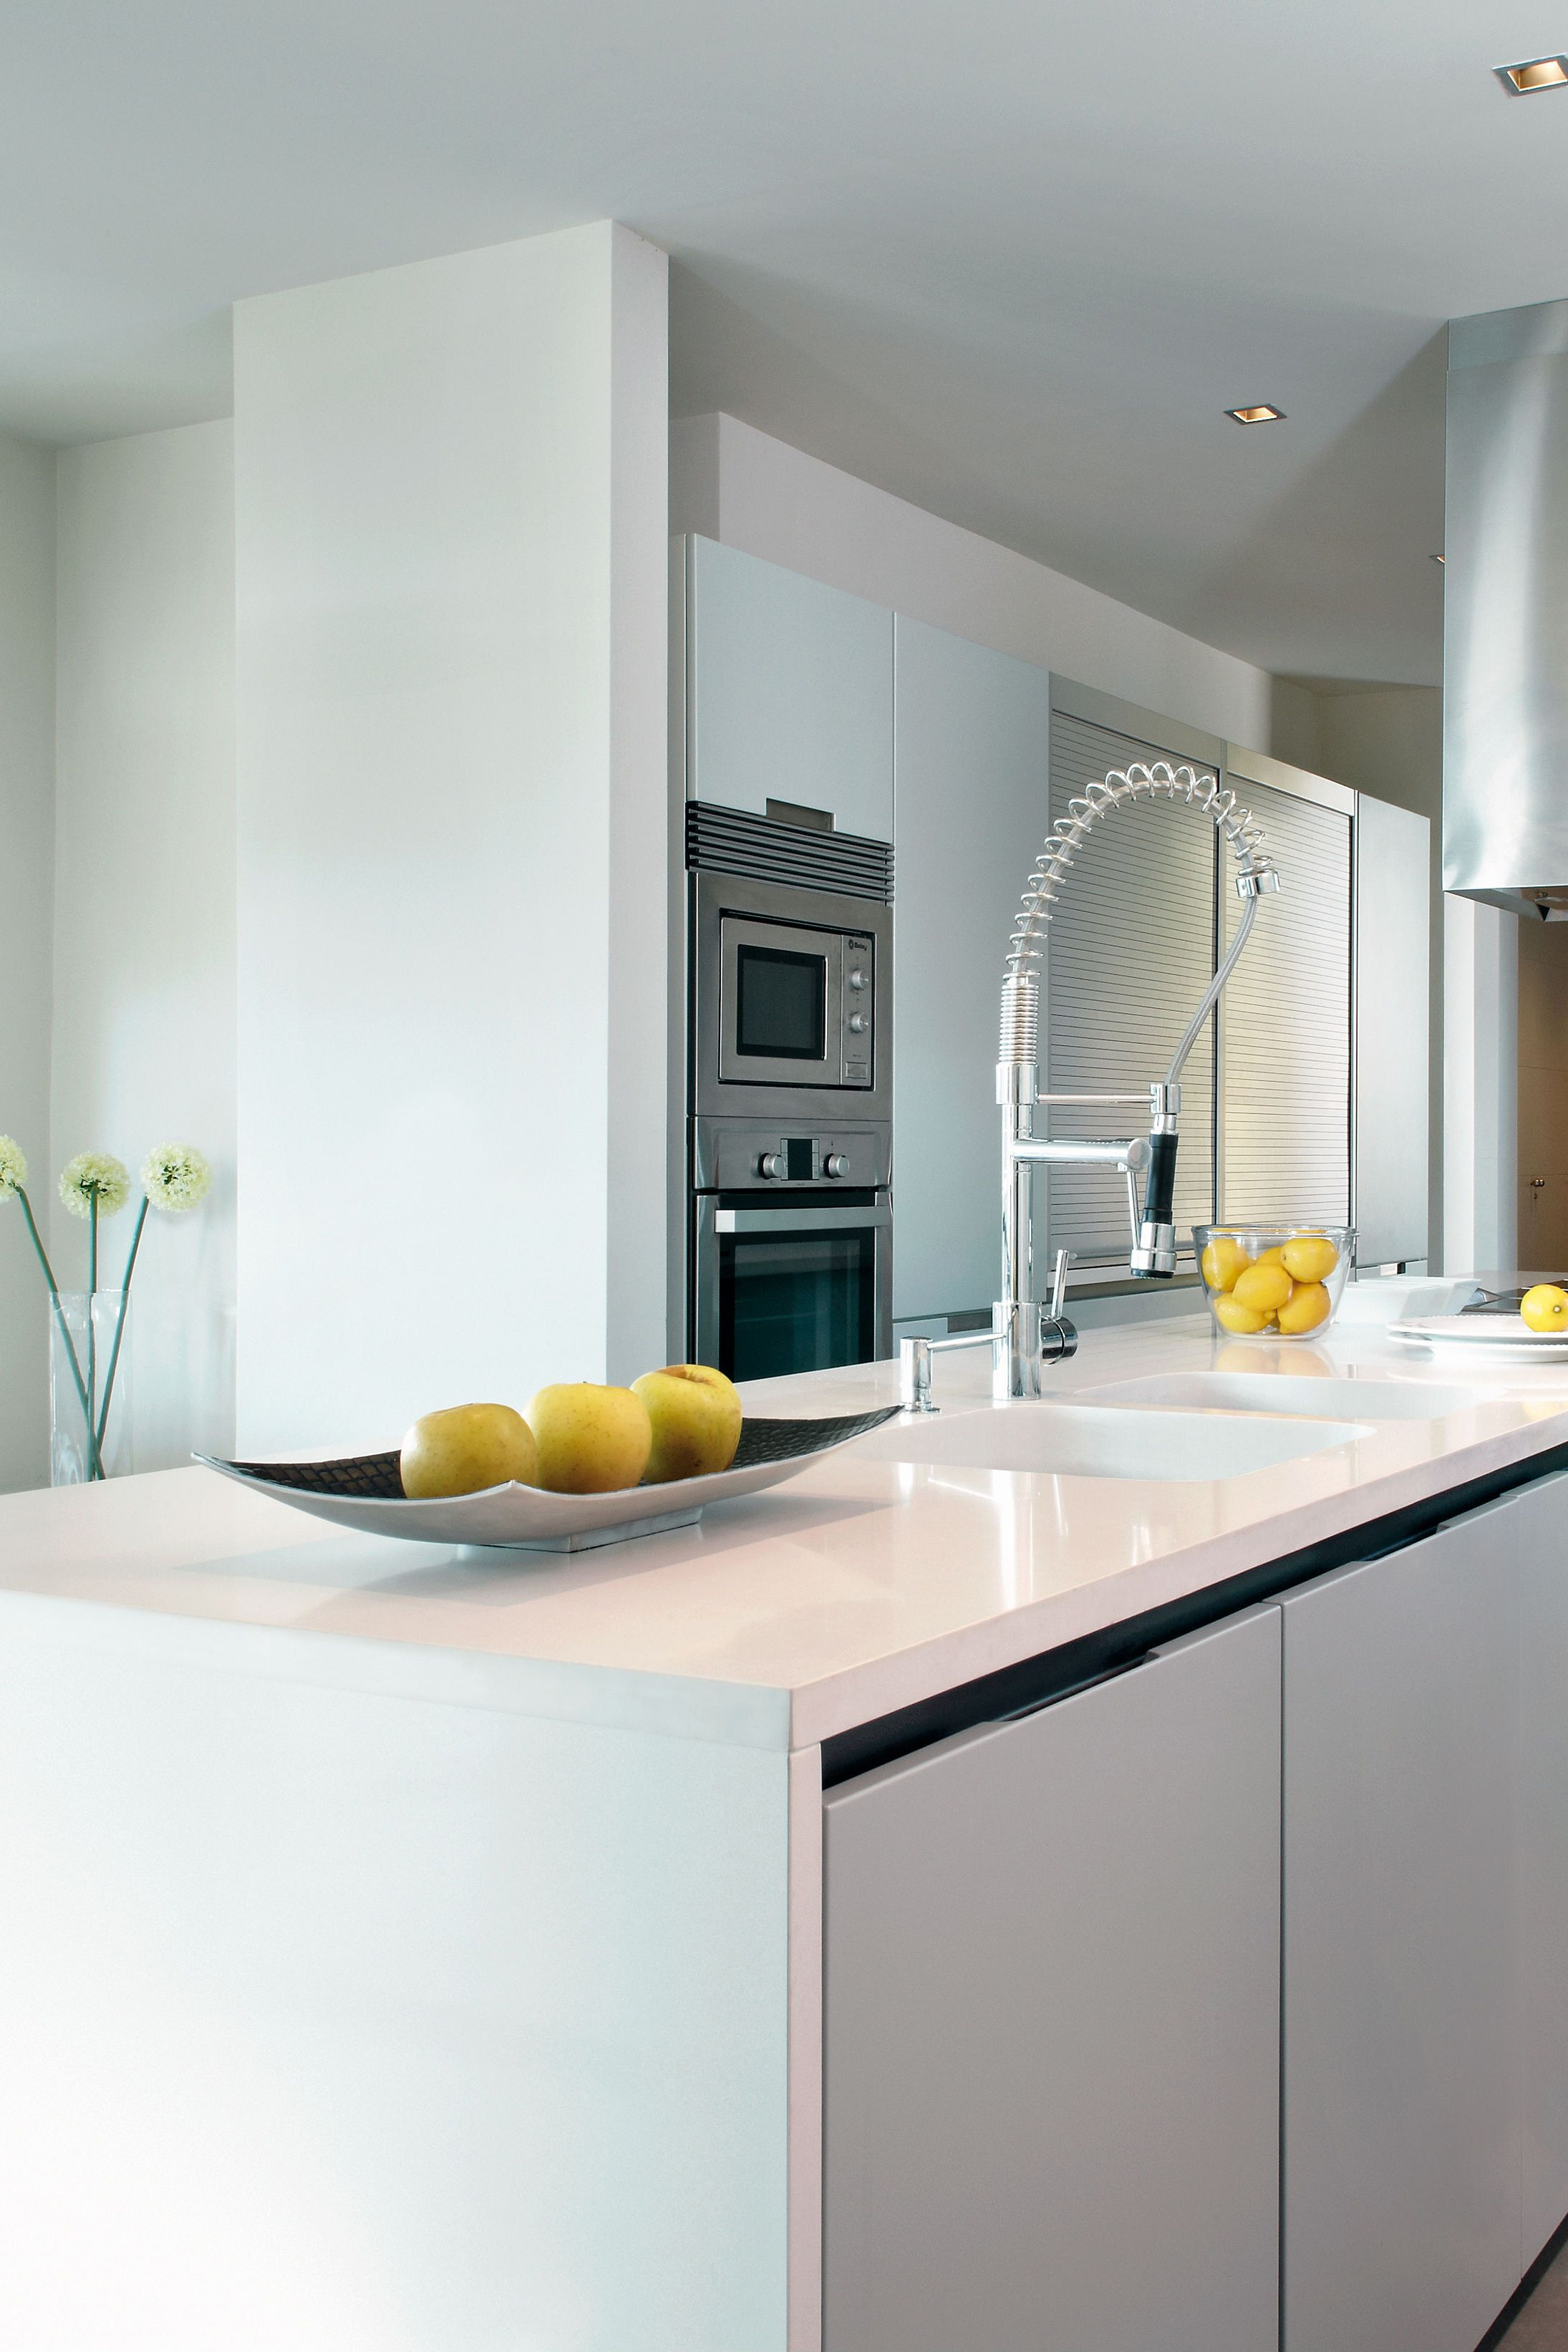 Pin On Kitchen Ideas Inspiration